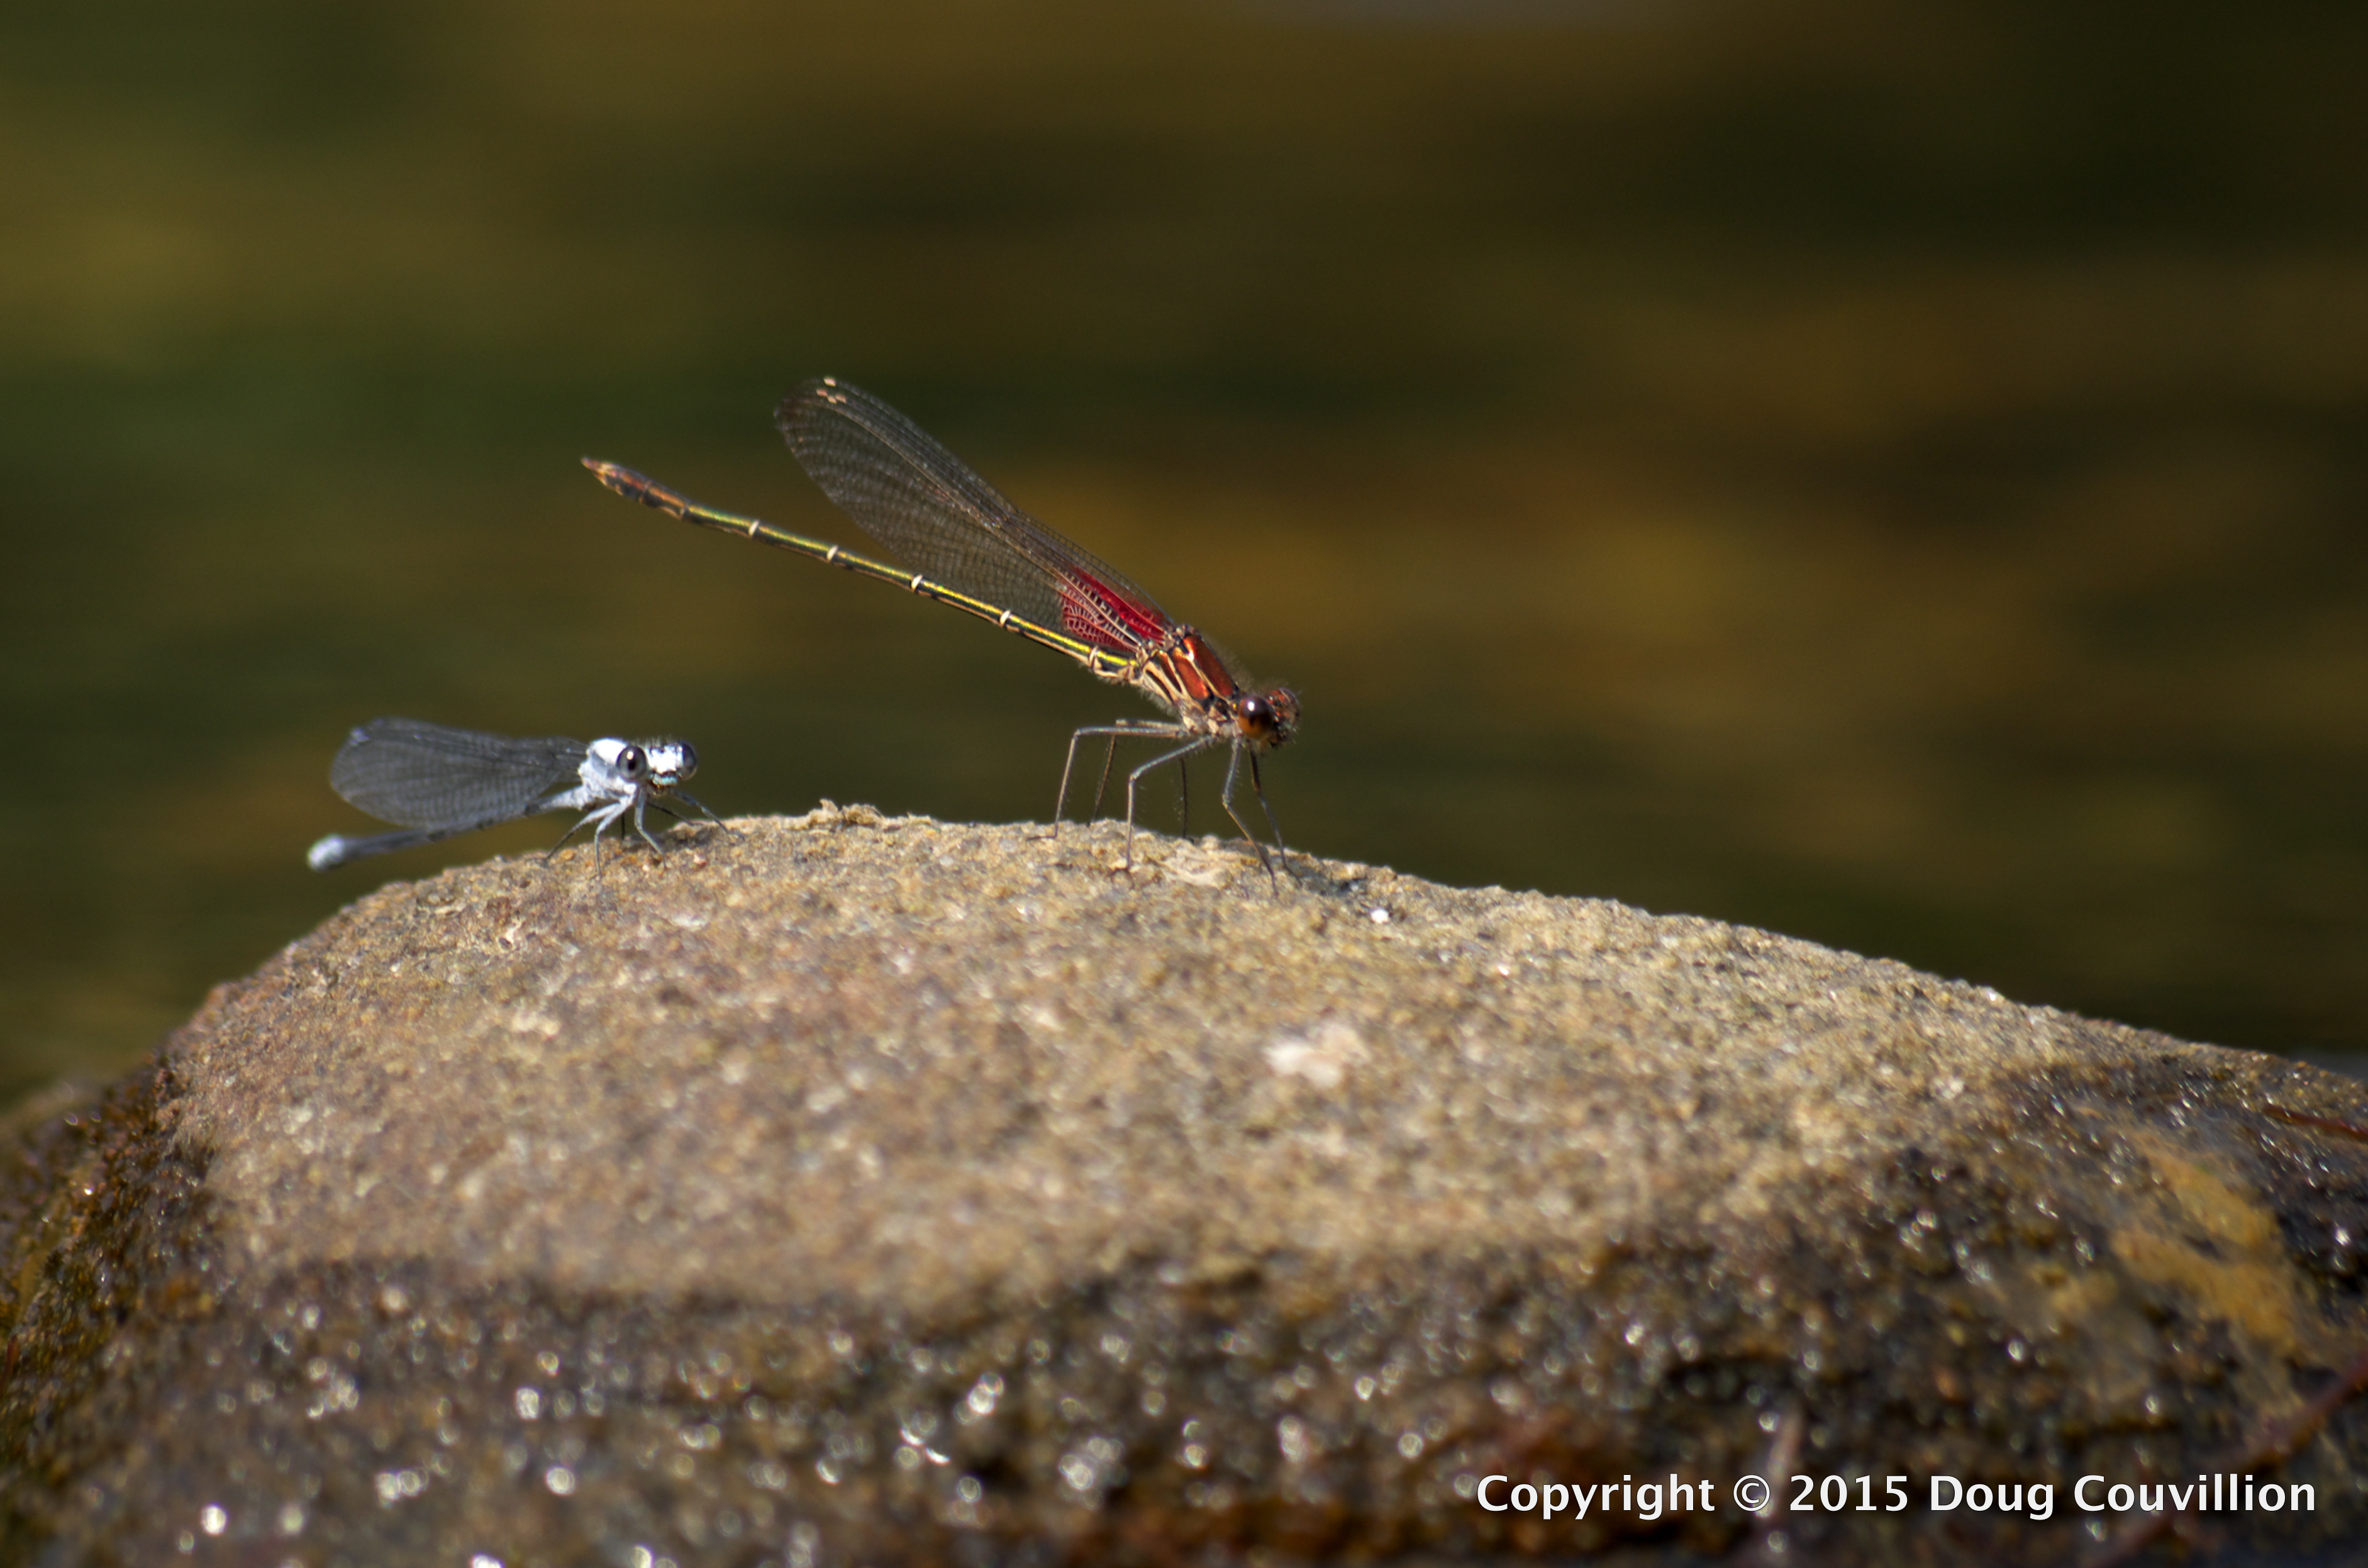 photograph of a red damselfly and a blue damselfly on a rock in the Rappahannock River in Virginia